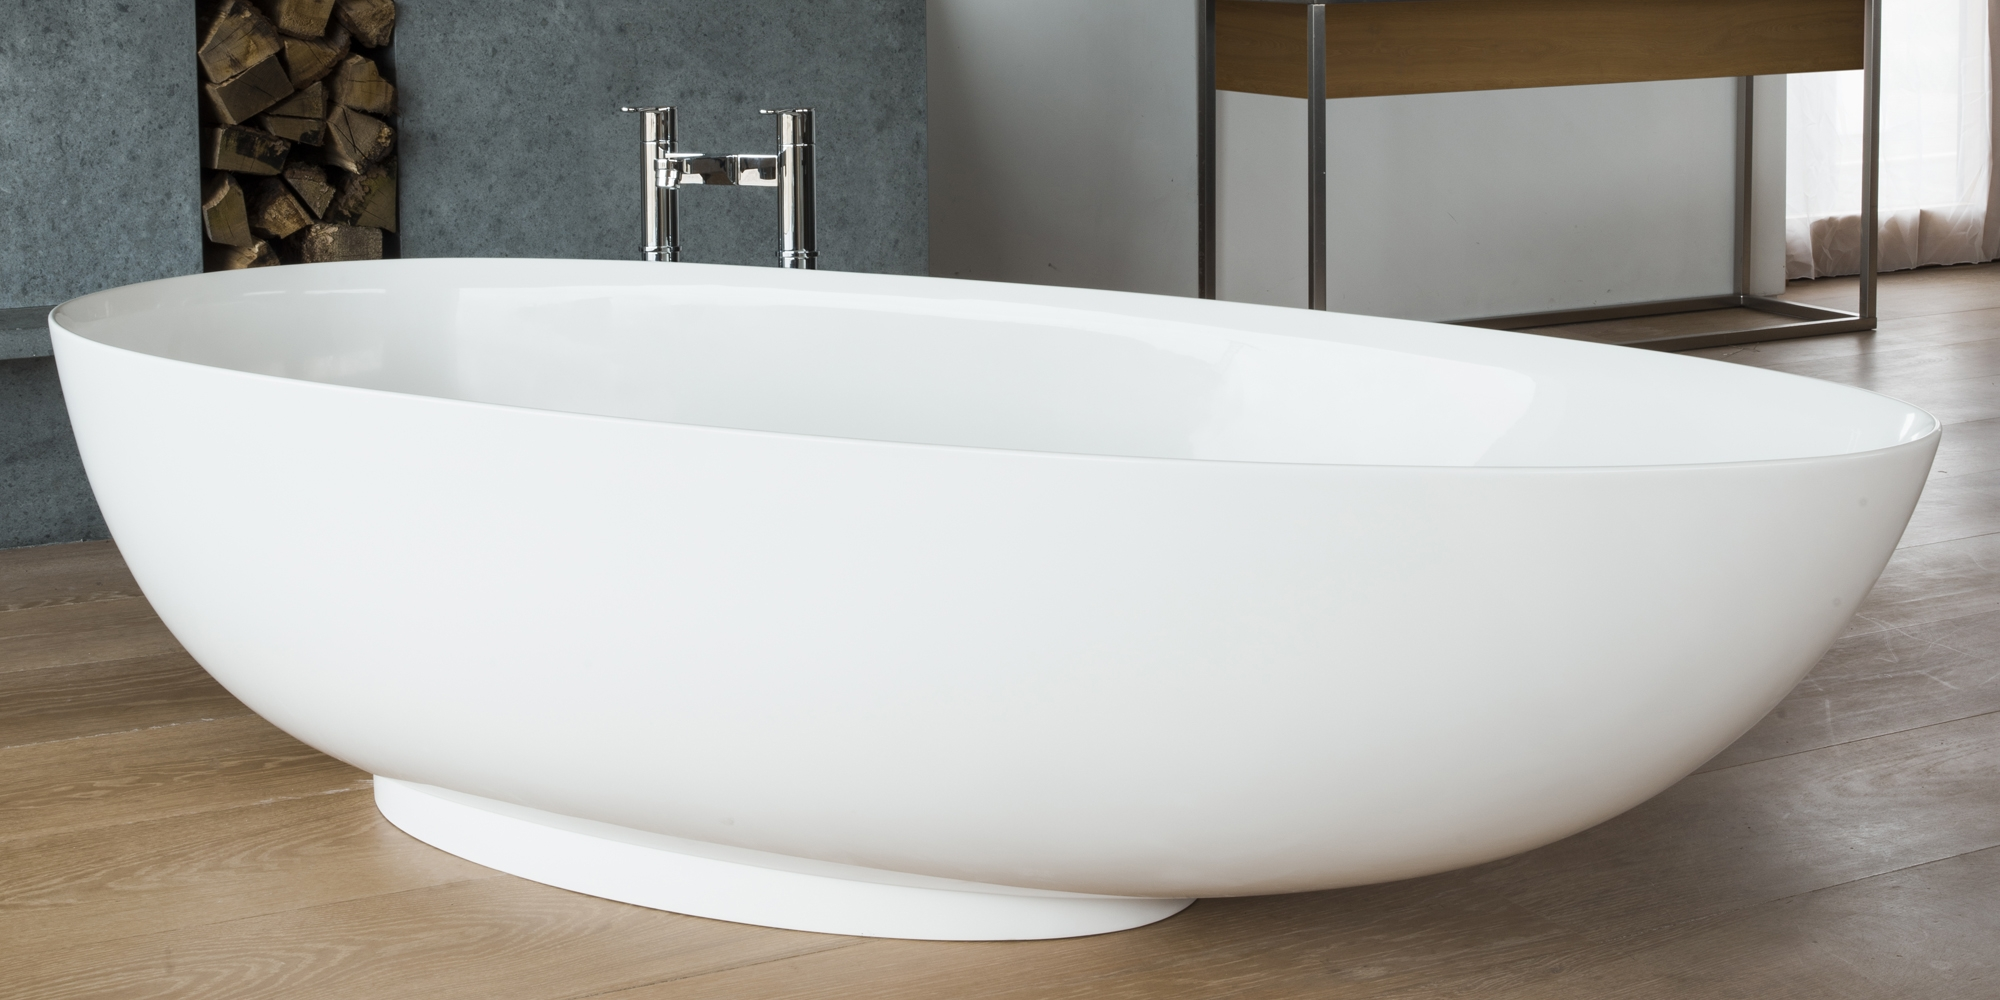 clearwaer bath, luxury bath, bath chester, bath shrewsbury